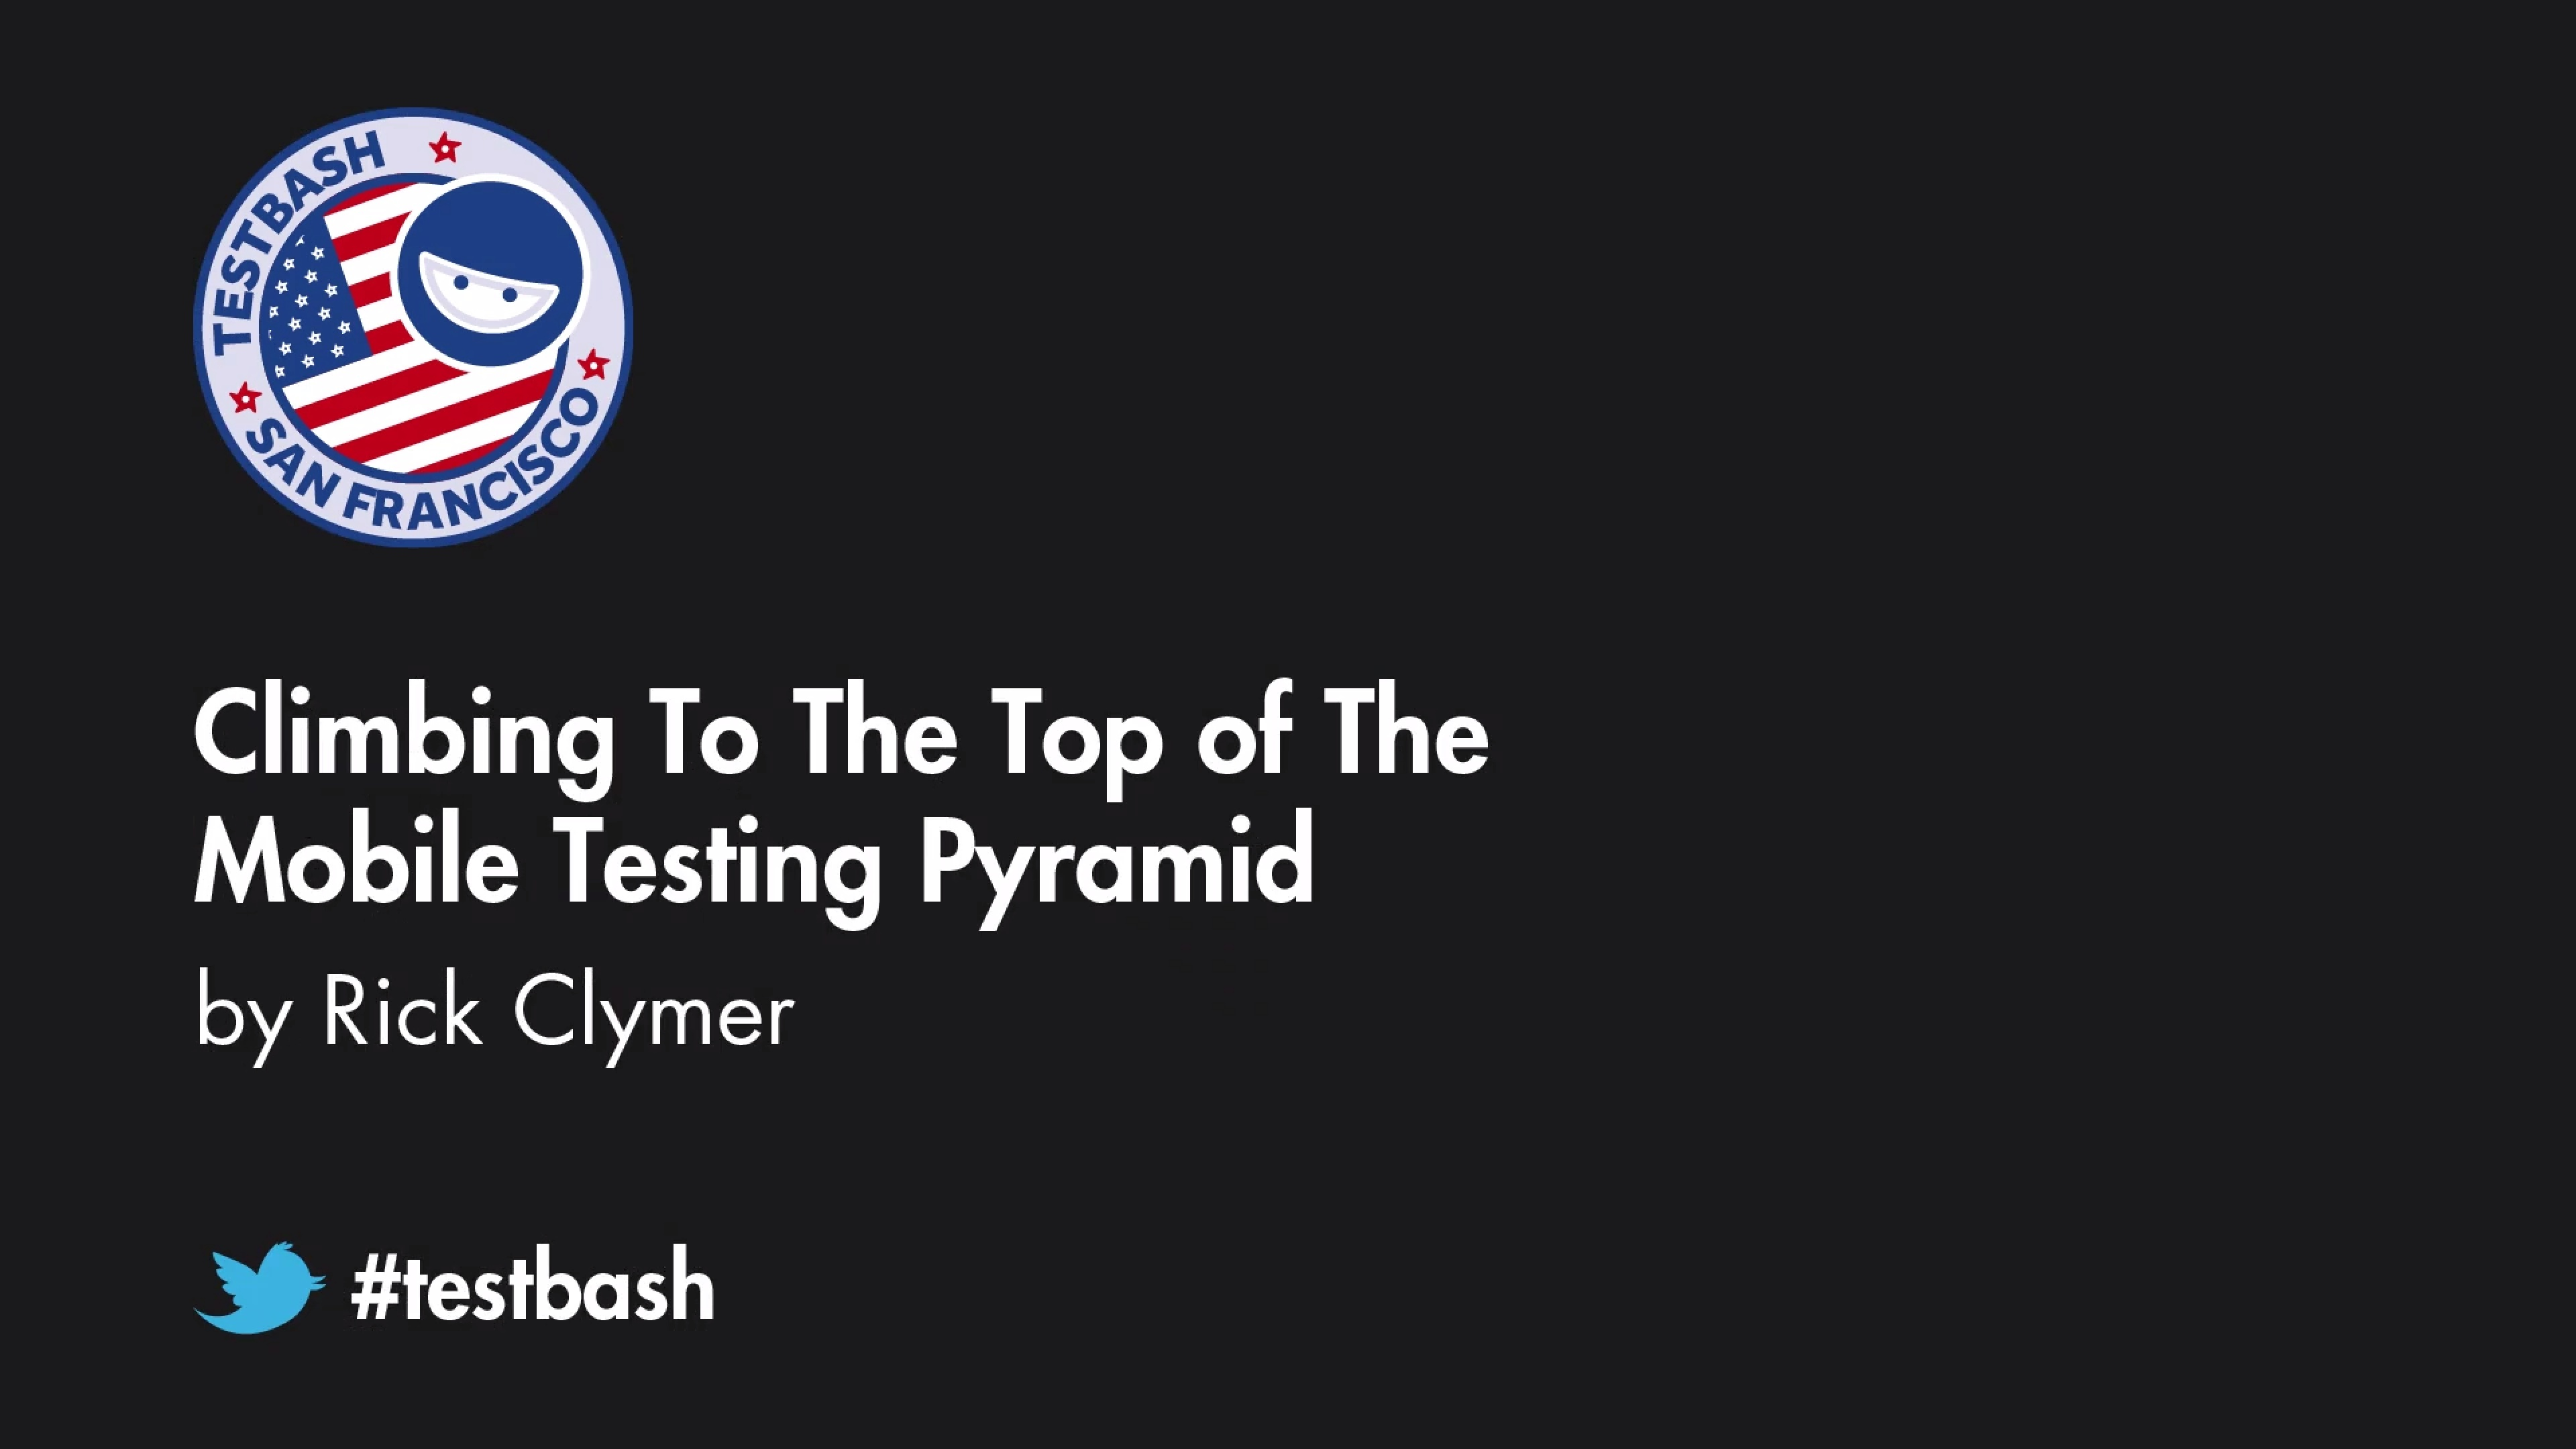 Climbing to the Top of the Mobile Testing Pyramid - Rick Clymer